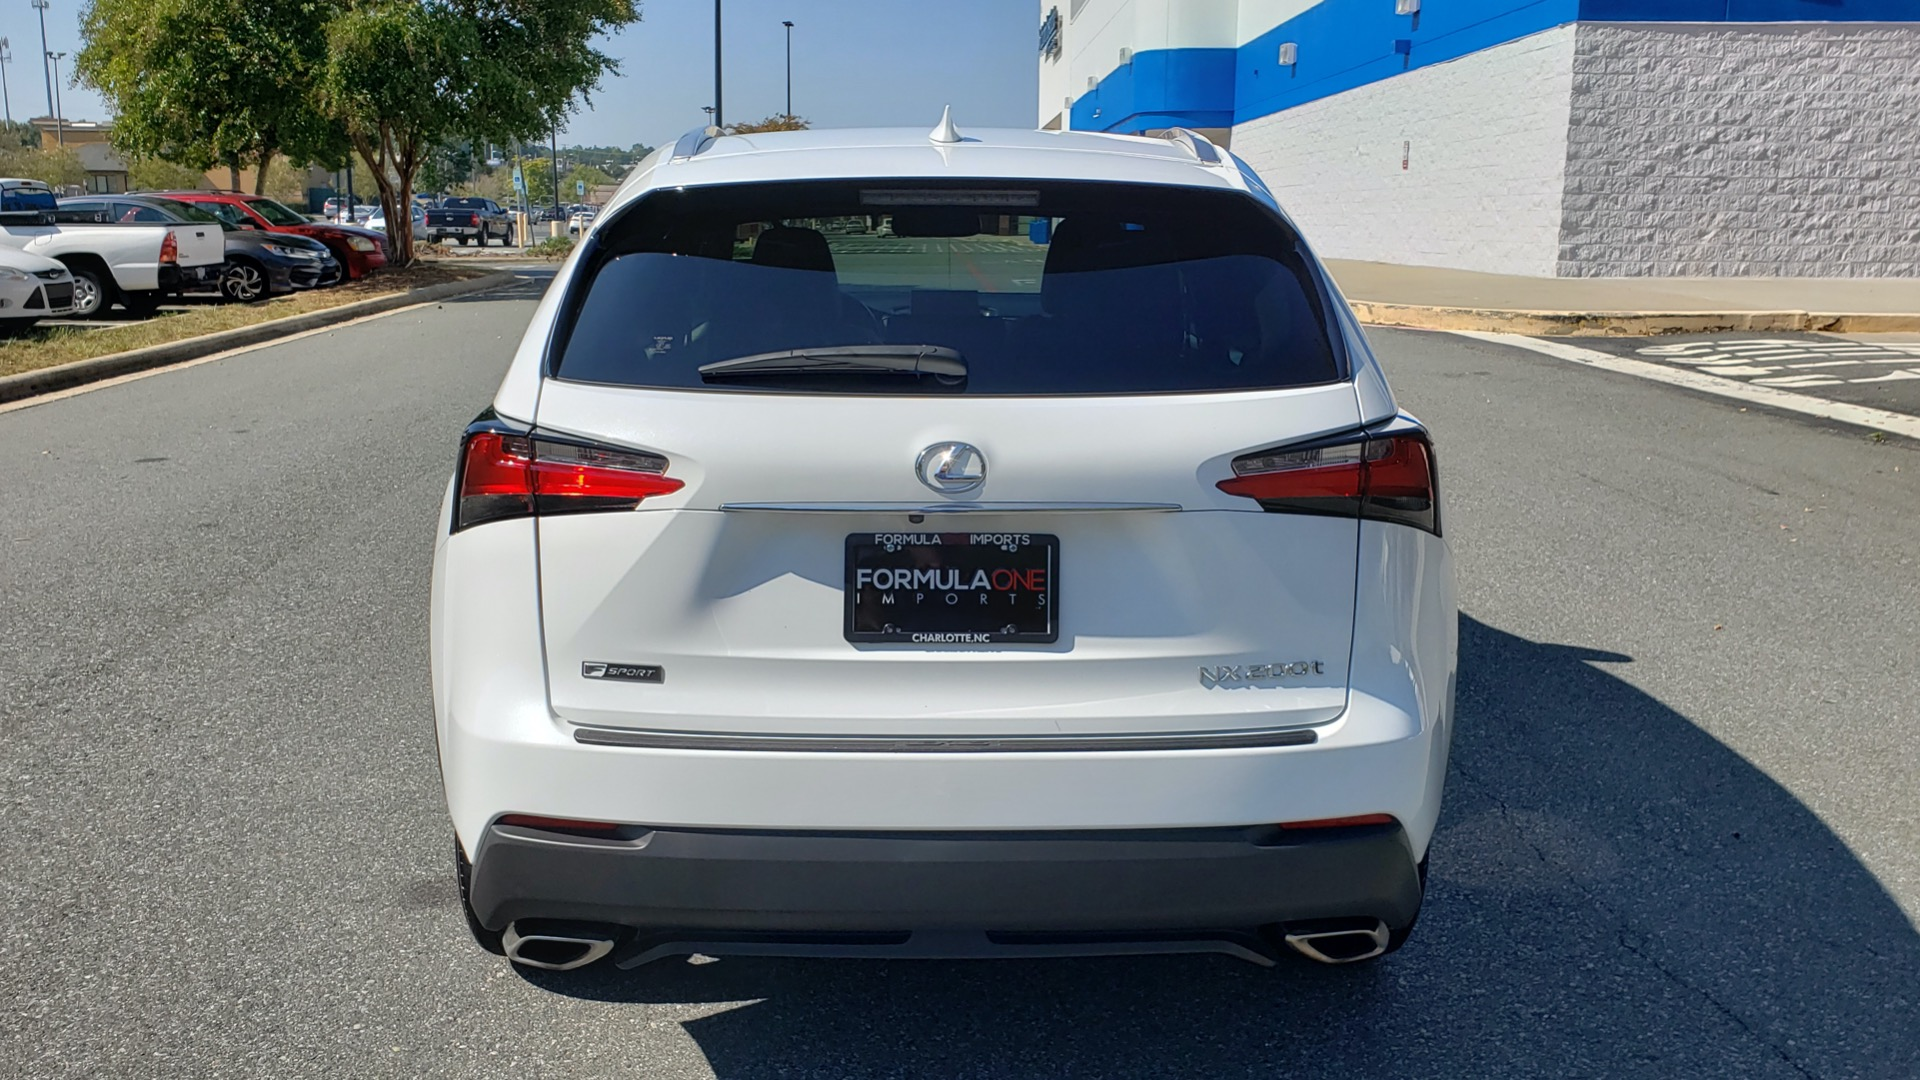 Used 2016 Lexus NX 200t F-SPORT / BACK-UP CAMERA / 18 INCH WHEELS for sale Sold at Formula Imports in Charlotte NC 28227 28